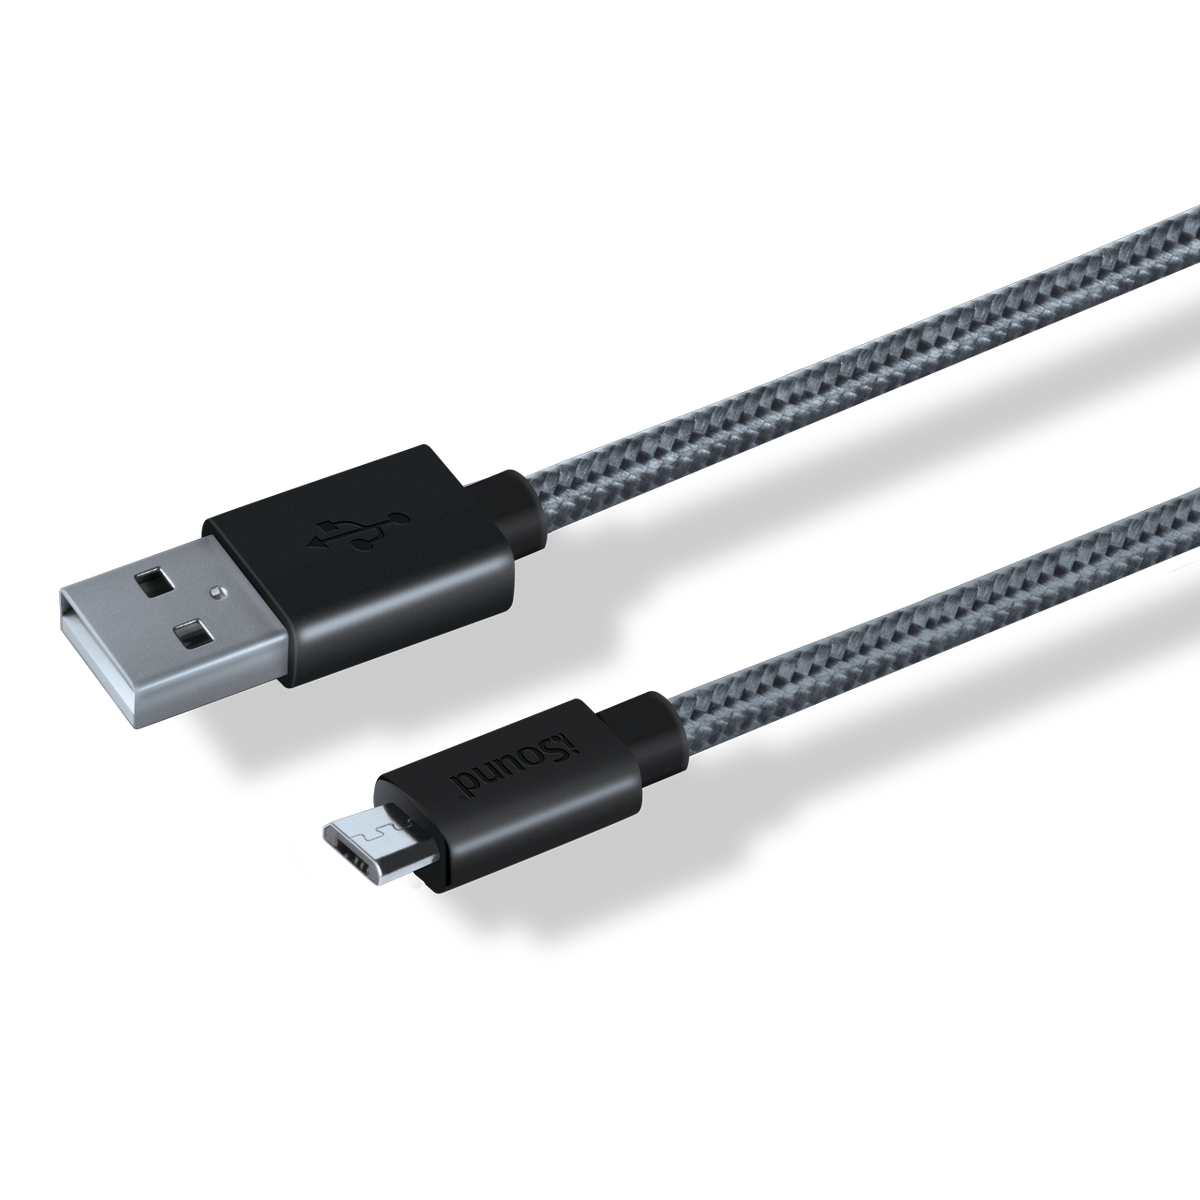 10 ft Braided Micro-USB Cable, black